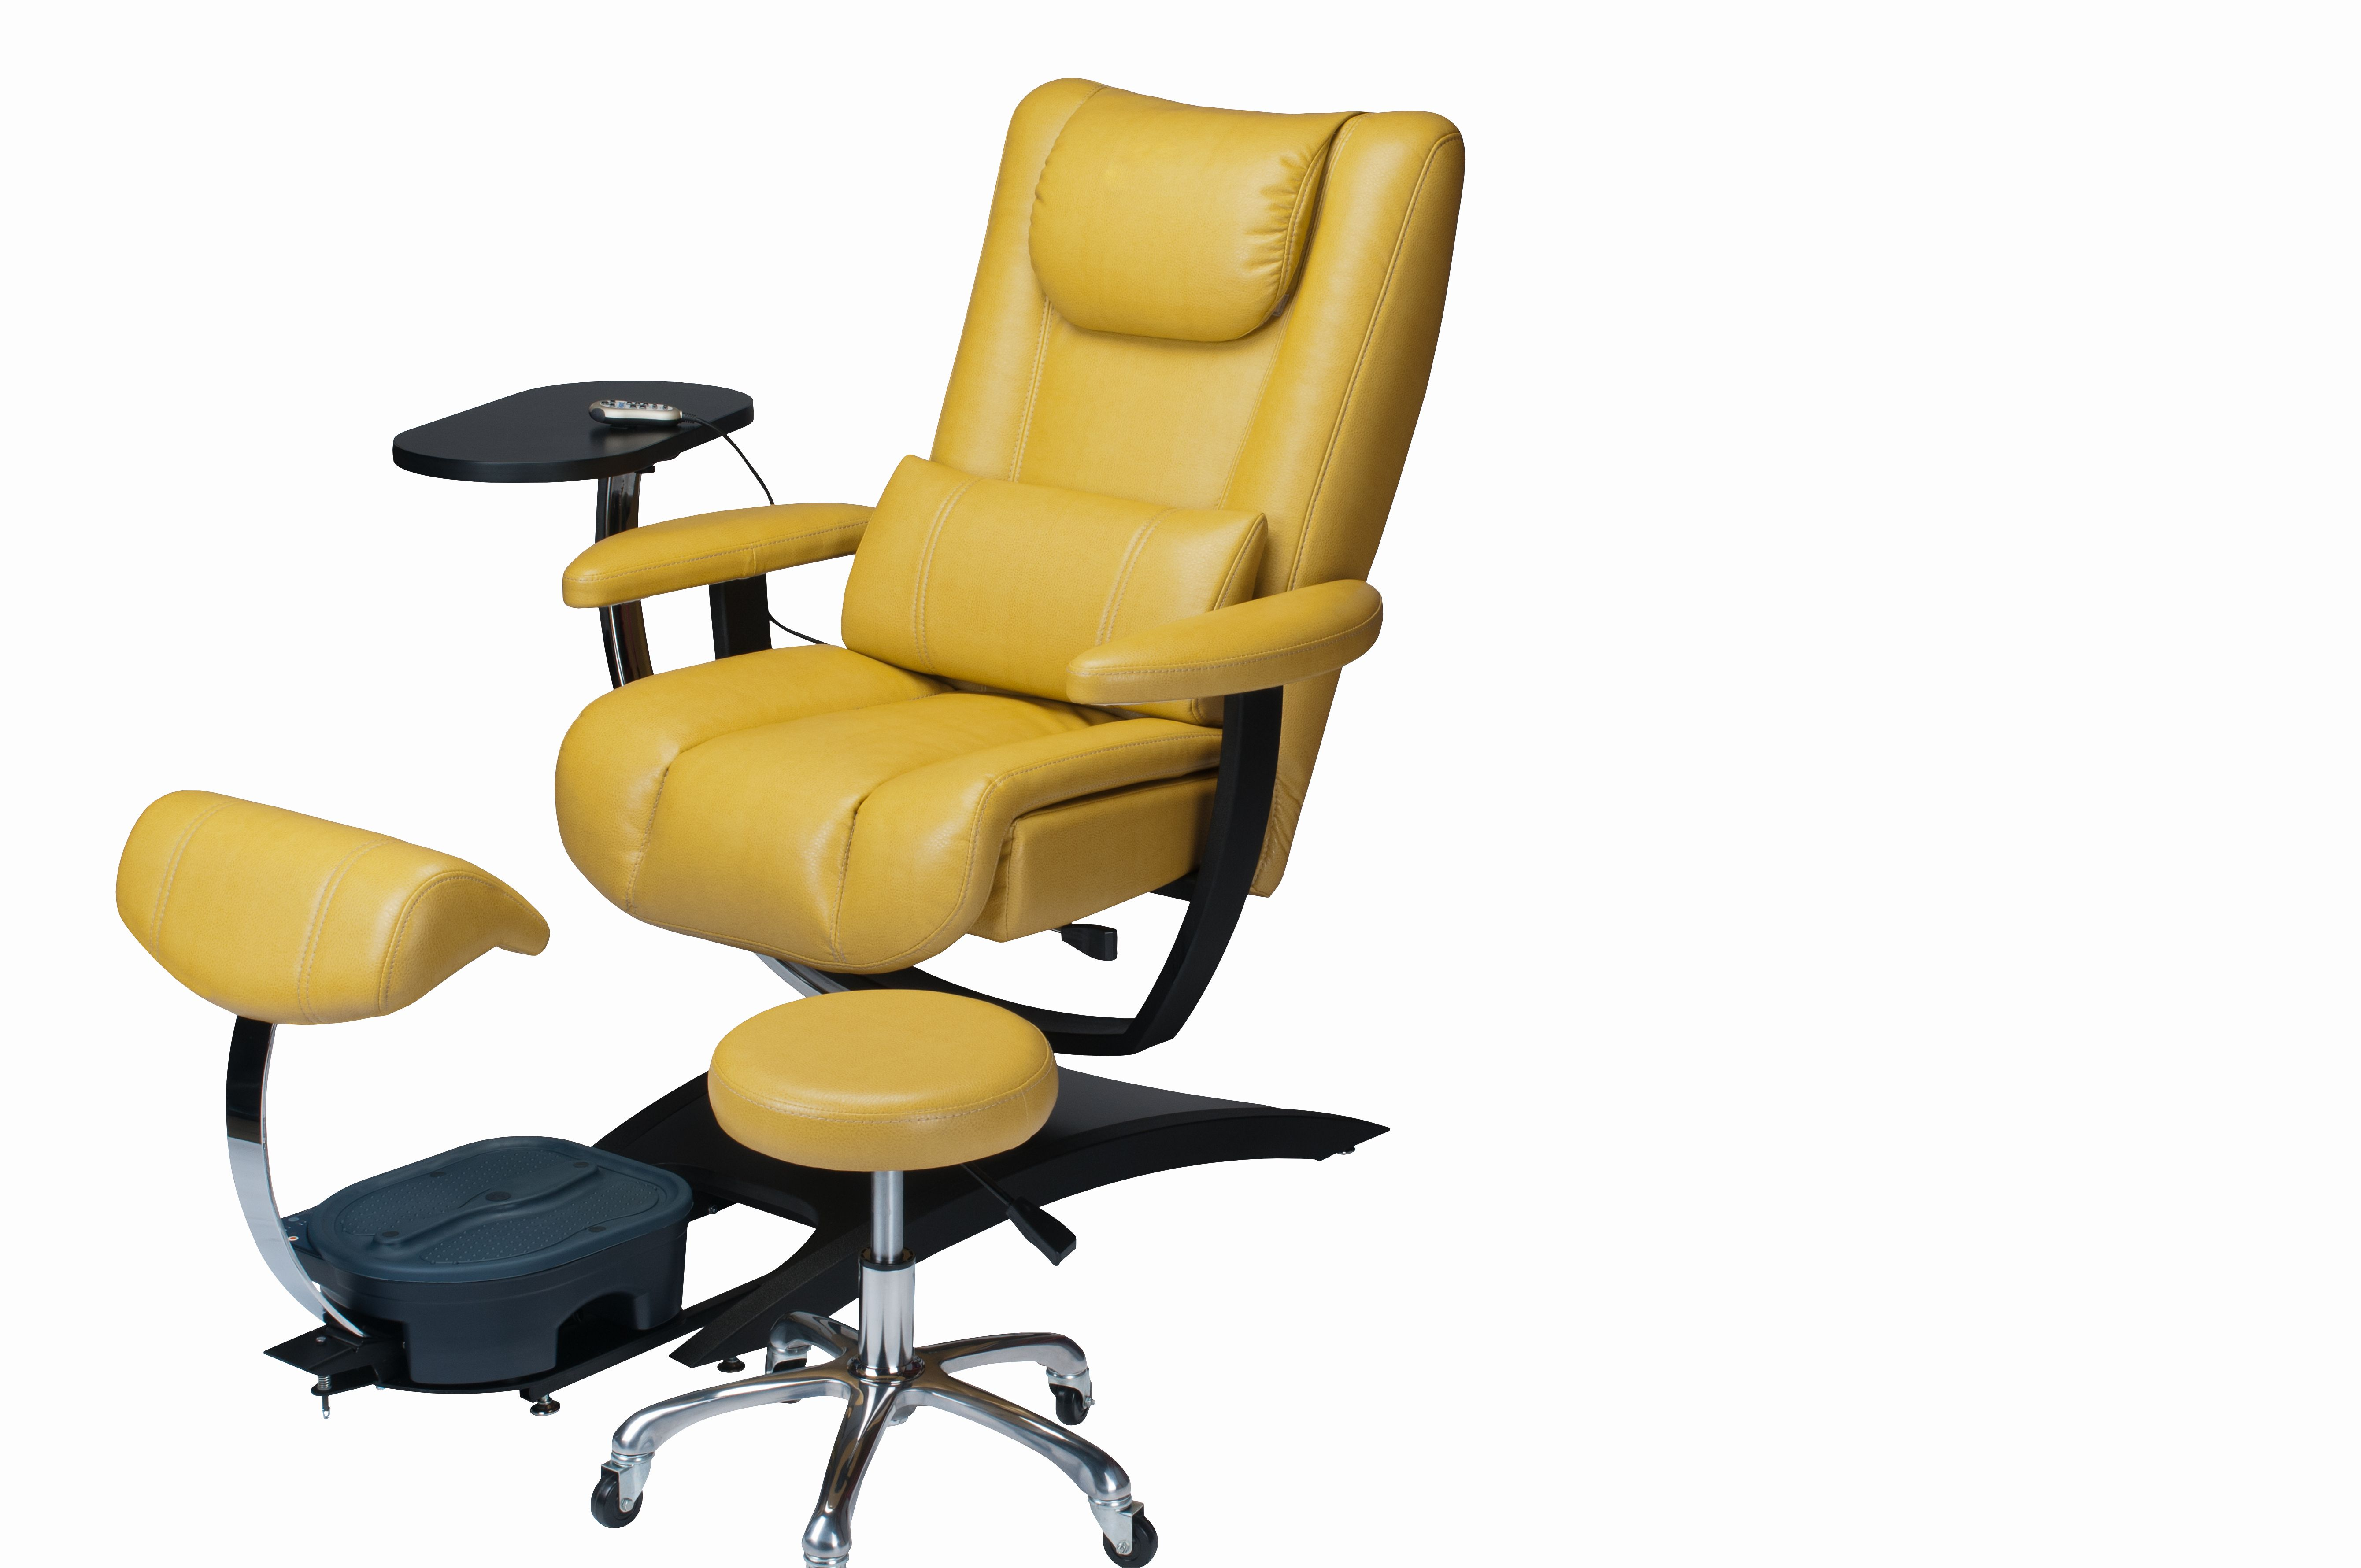 Used No Plumbing Pedicure Chair Posture For Home Endless Custom Color Choices